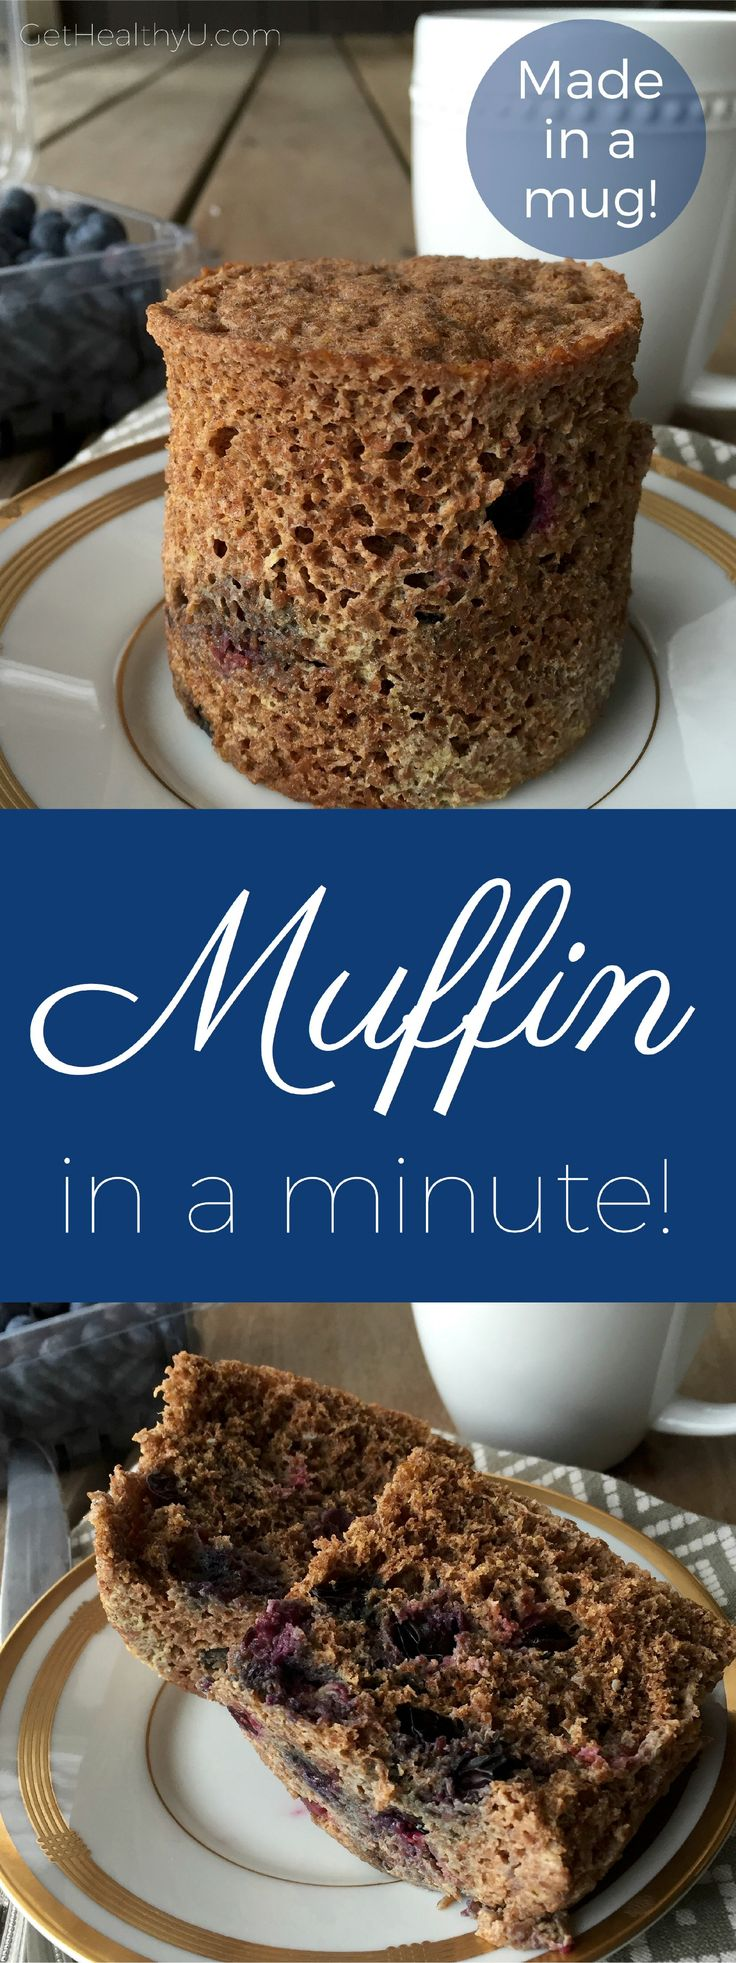 Check out your new go-to breakfast- This quick easy, healthy, low carb and high fiber muffin is perfect to grab and go!  Make it with any fruit and nuts you have on hand- grab a mug and microwave!